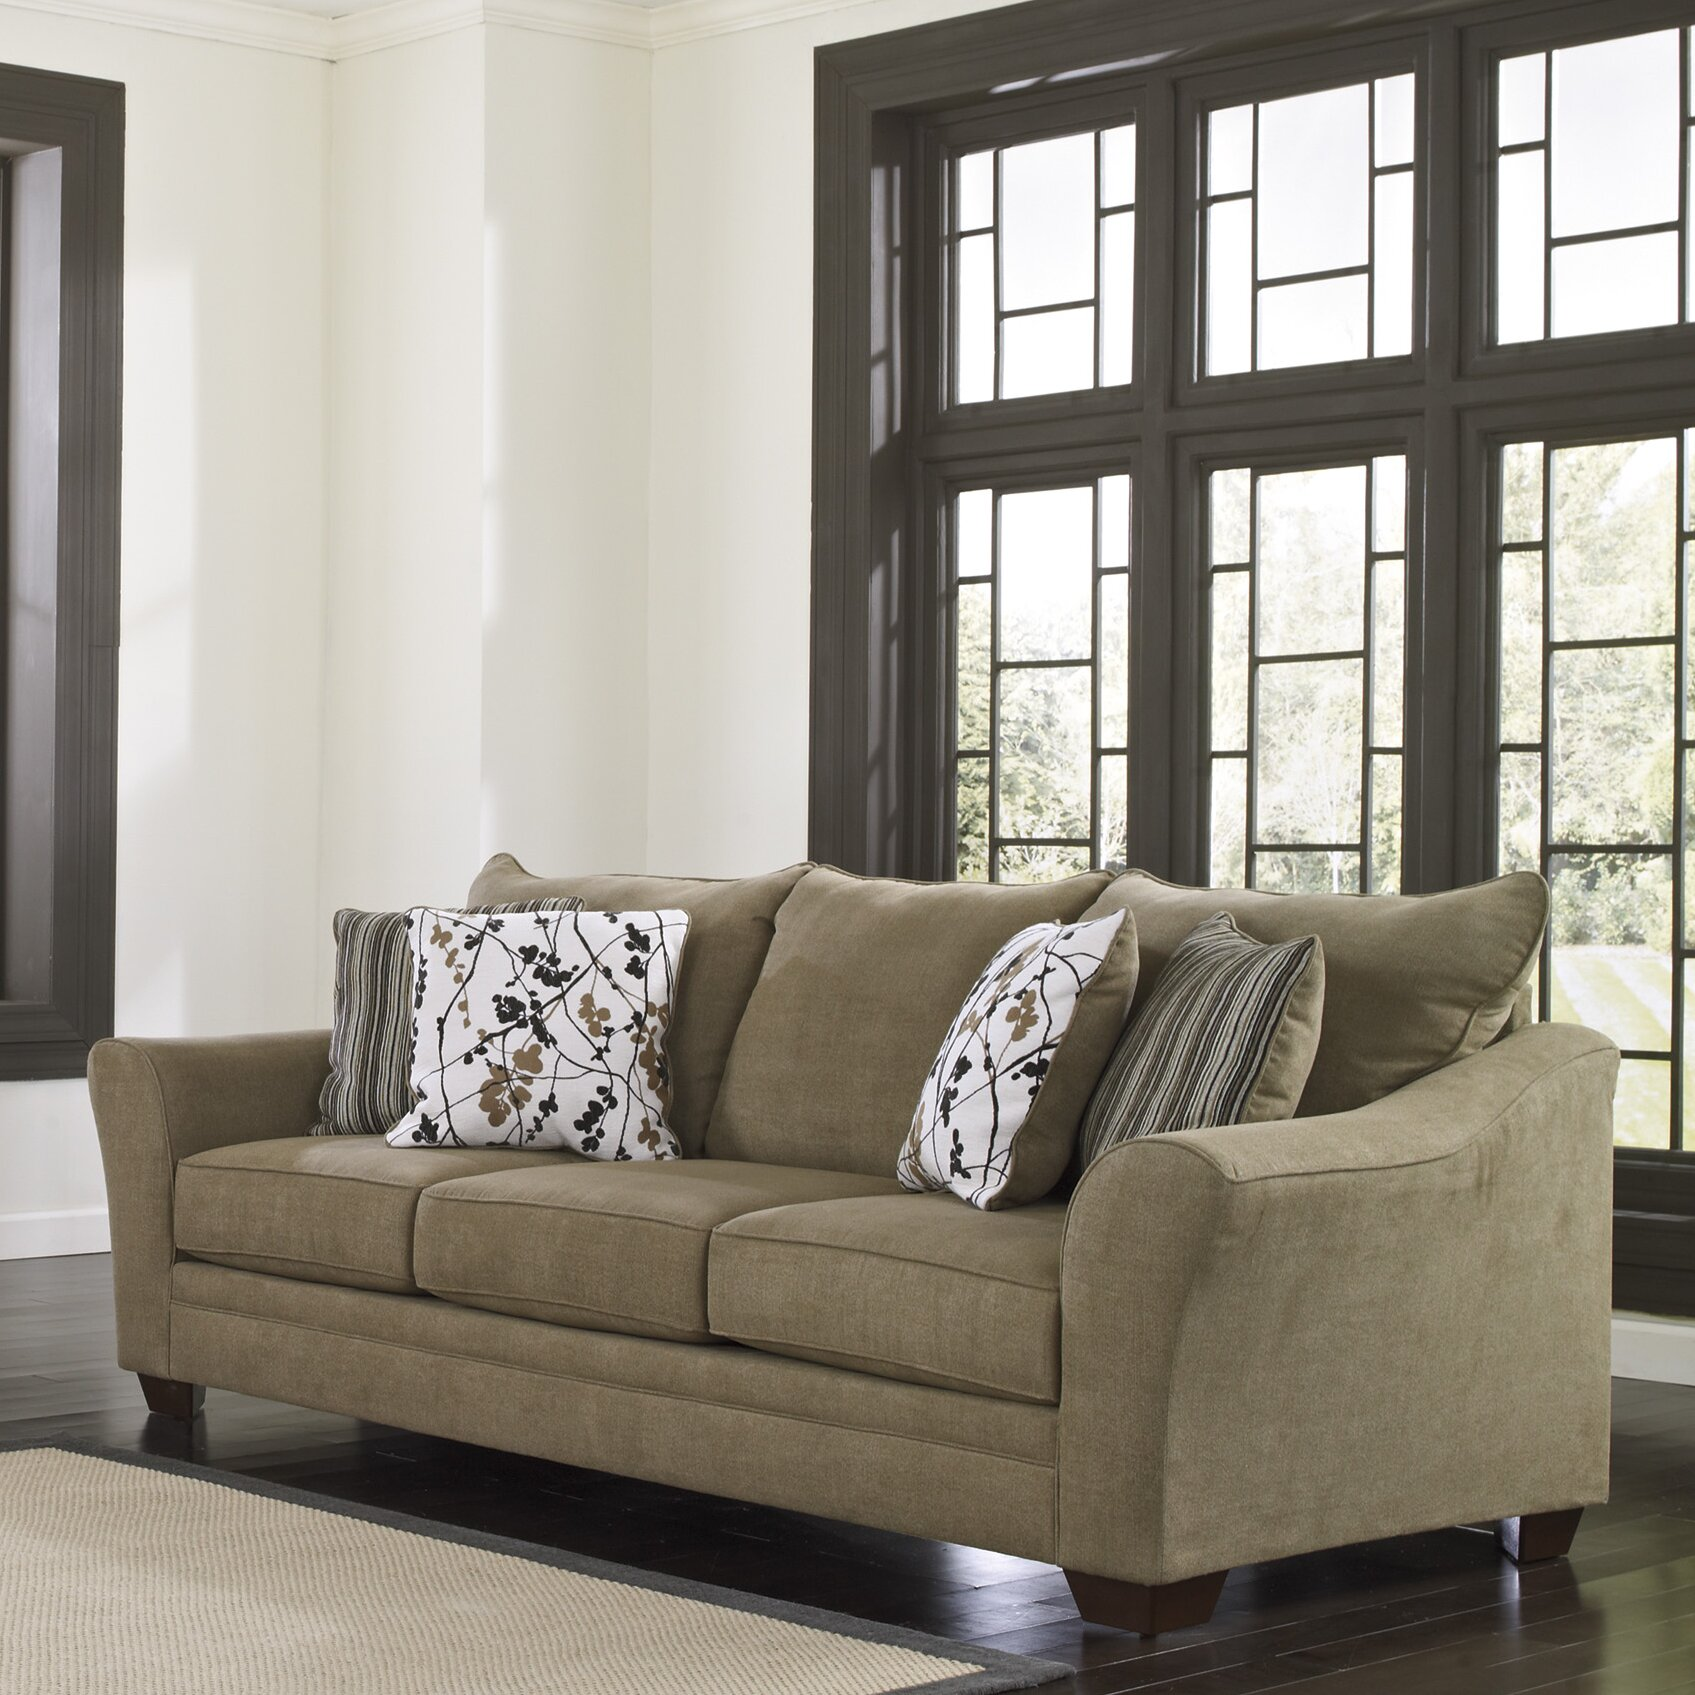 Signature Design by Ashley Mykla Sofa & Reviews